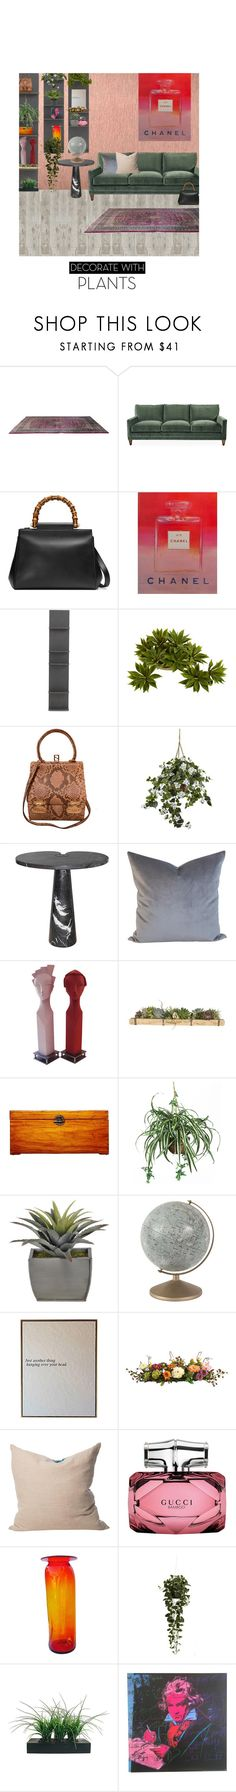 """""""Untitled #565"""" by adaylateabuckshort ❤ liked on Polyvore featuring interior, interiors, interior design, home, home decor, interior decorating, Sarreid, Gucci, Andy Warhol and Mitchell Gold + Bob Williams"""